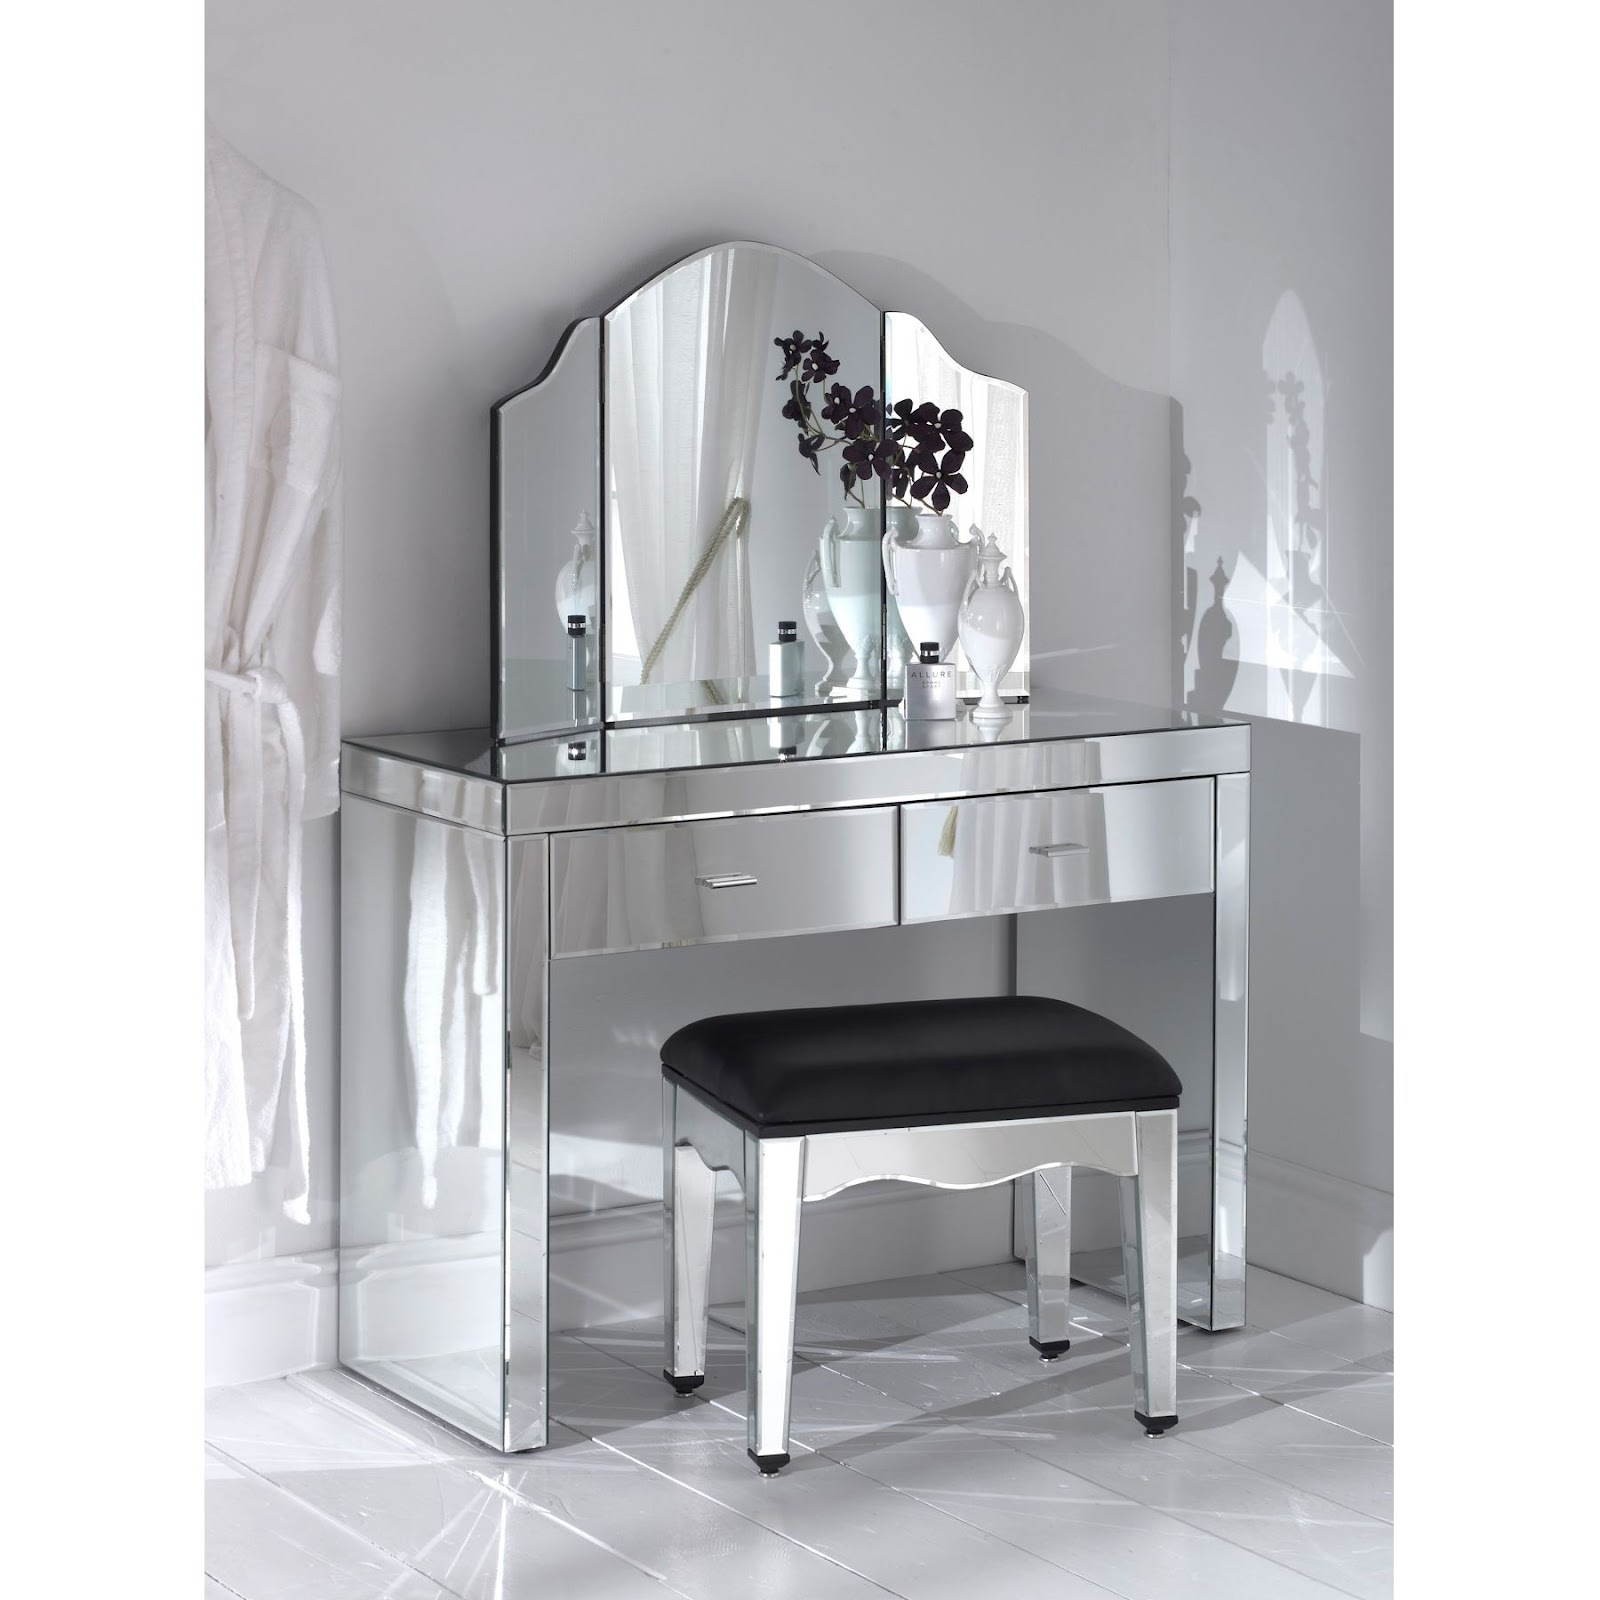 Modern dressing table furniture designs an interior design for Small mirrored dressing table set